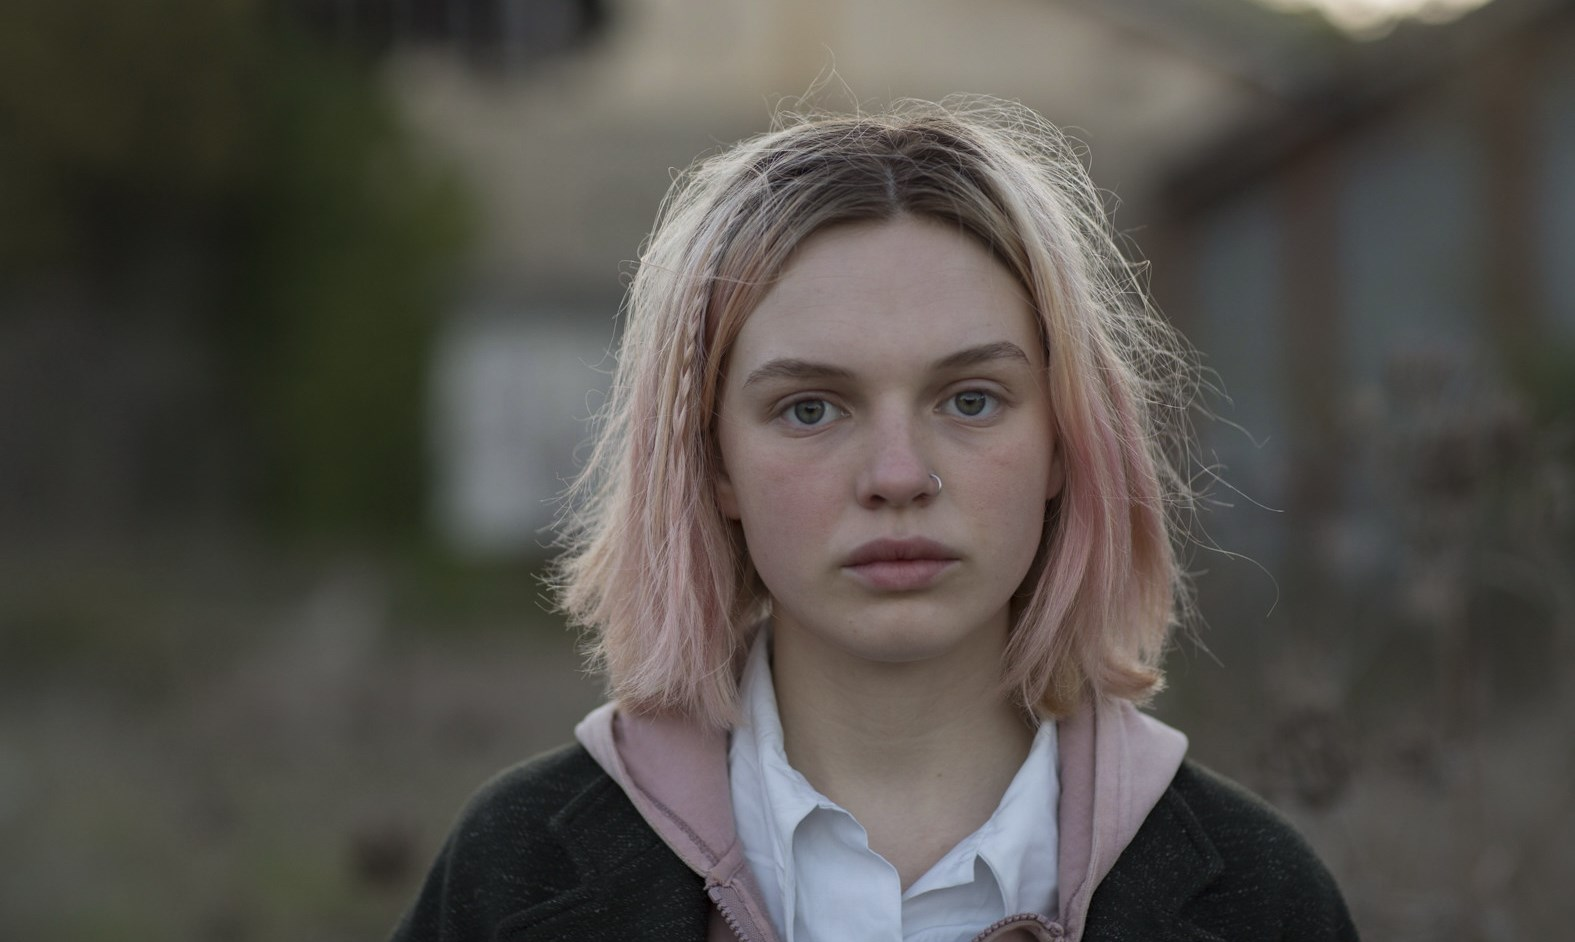 Odessa Young